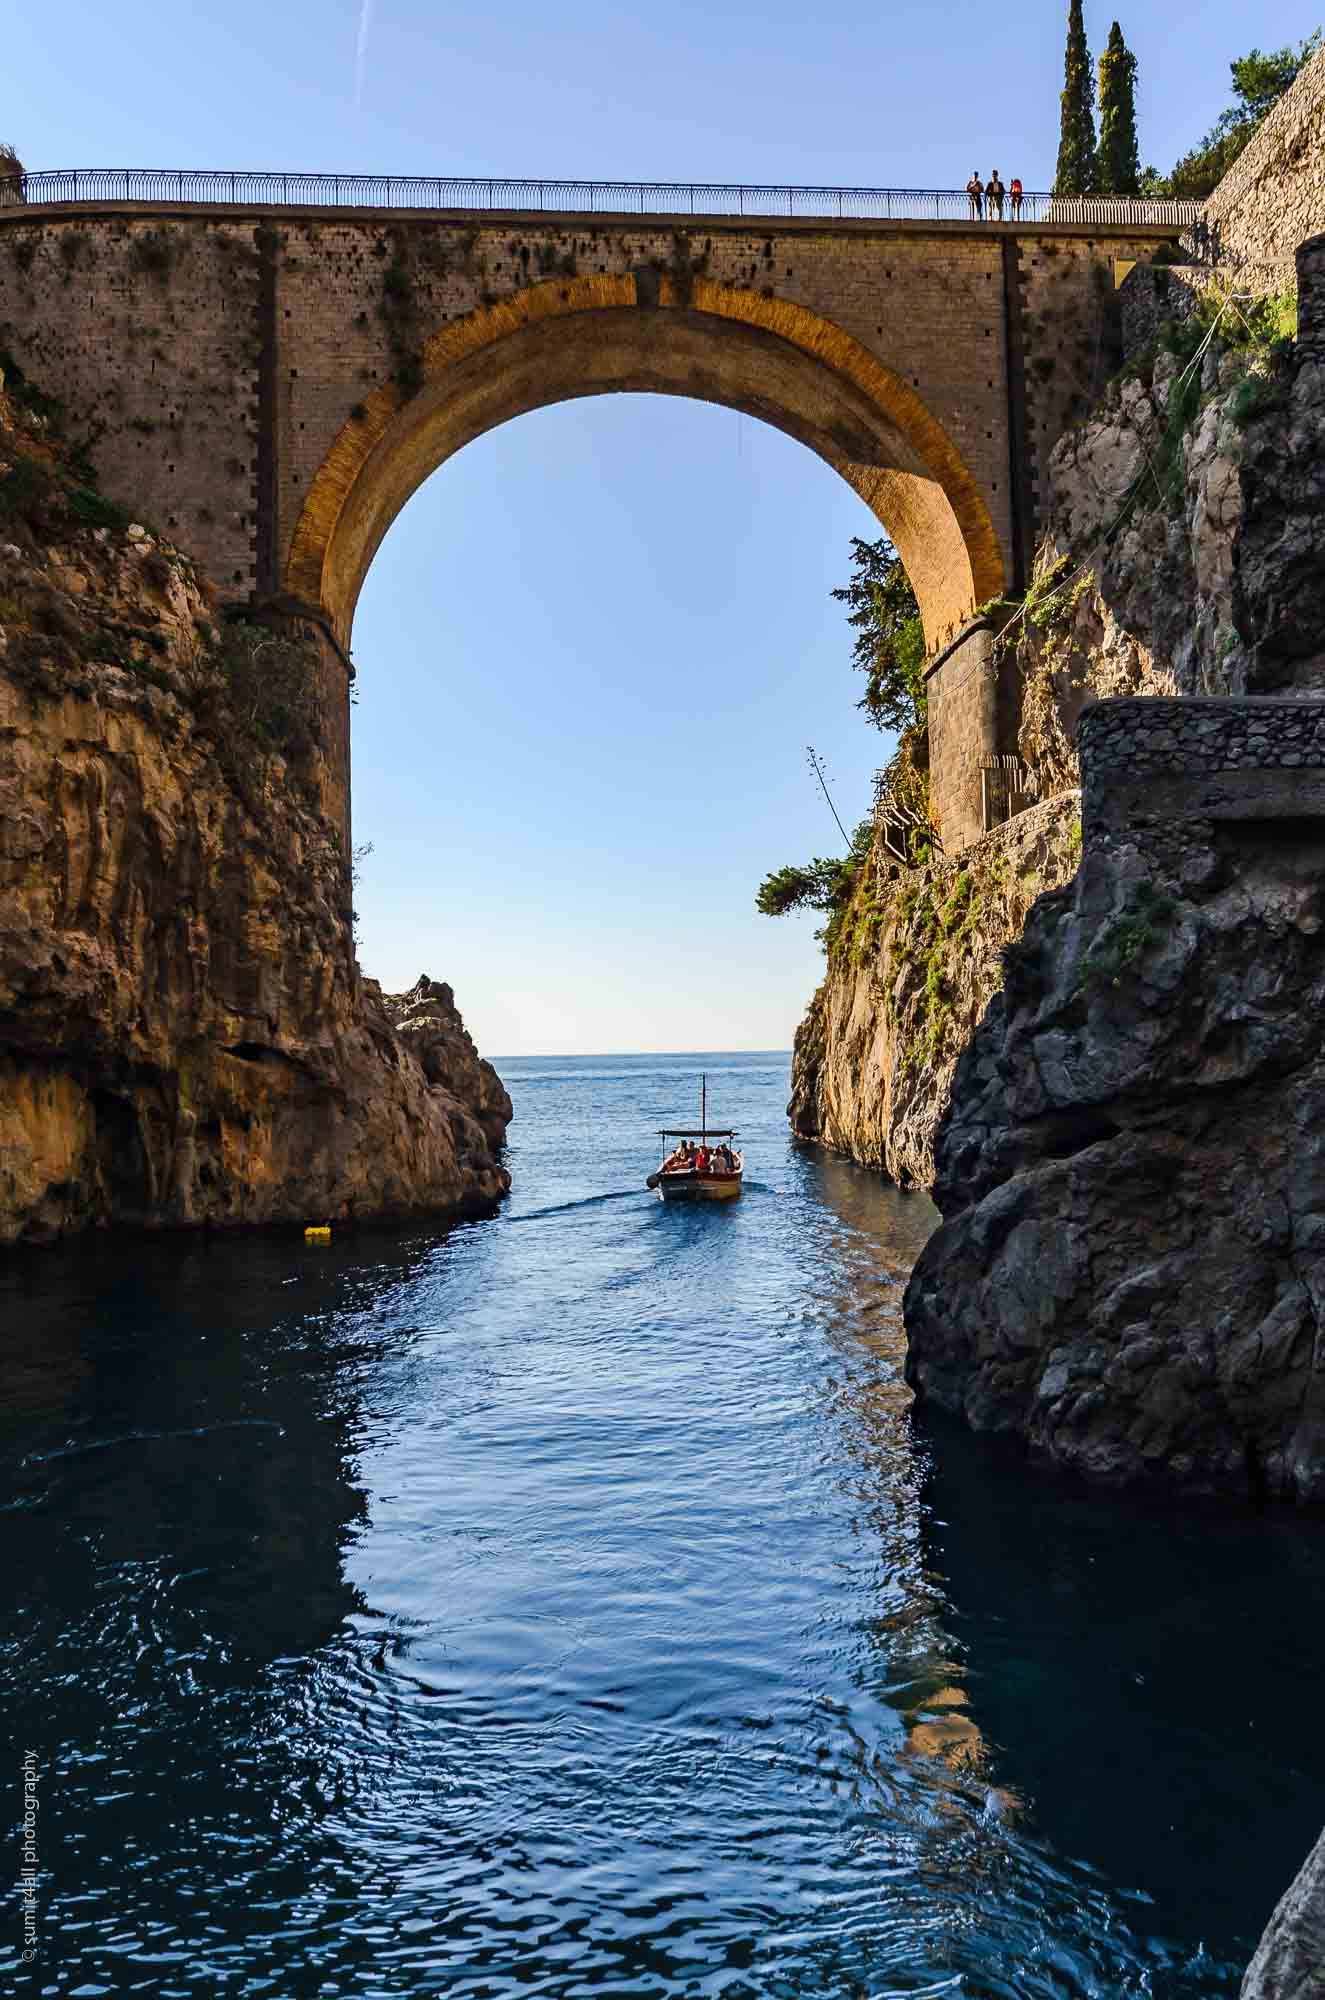 Bridge in Furore on the Amalfi Coast, Italy